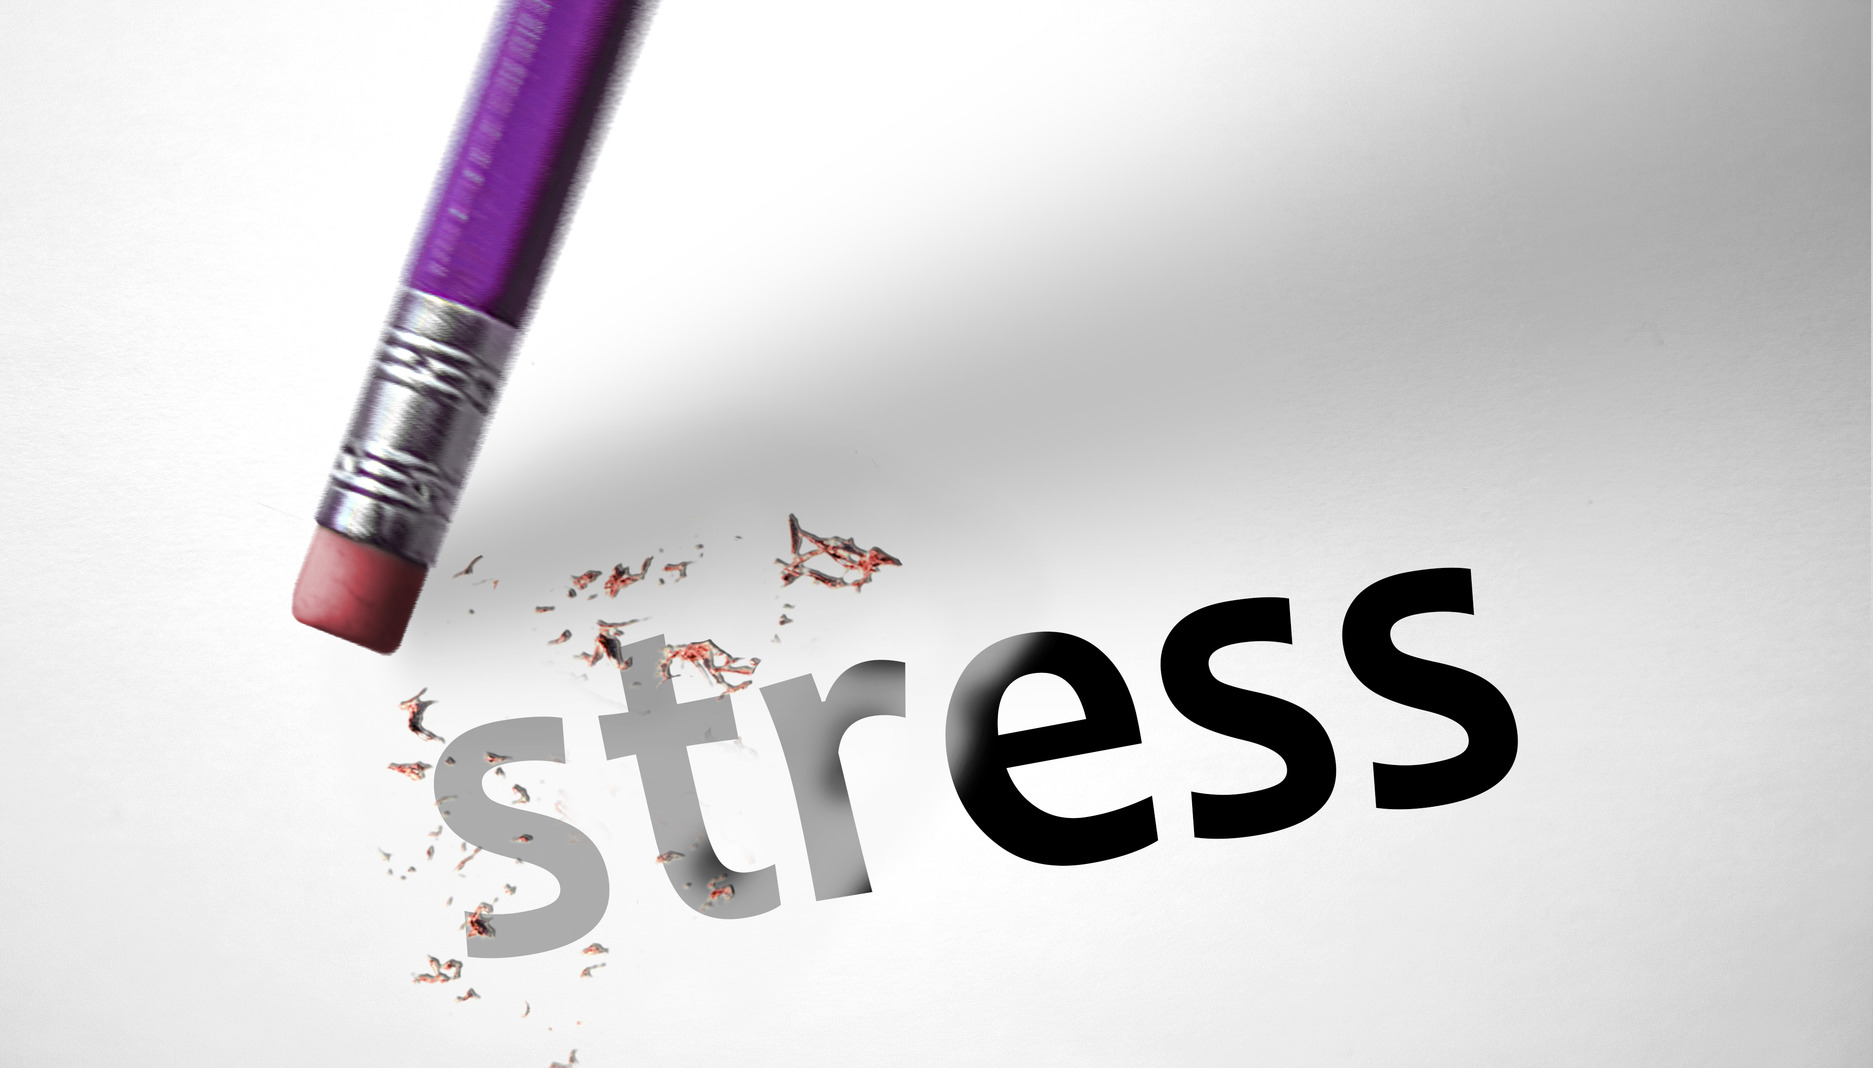 Eraser deleting the word Stress